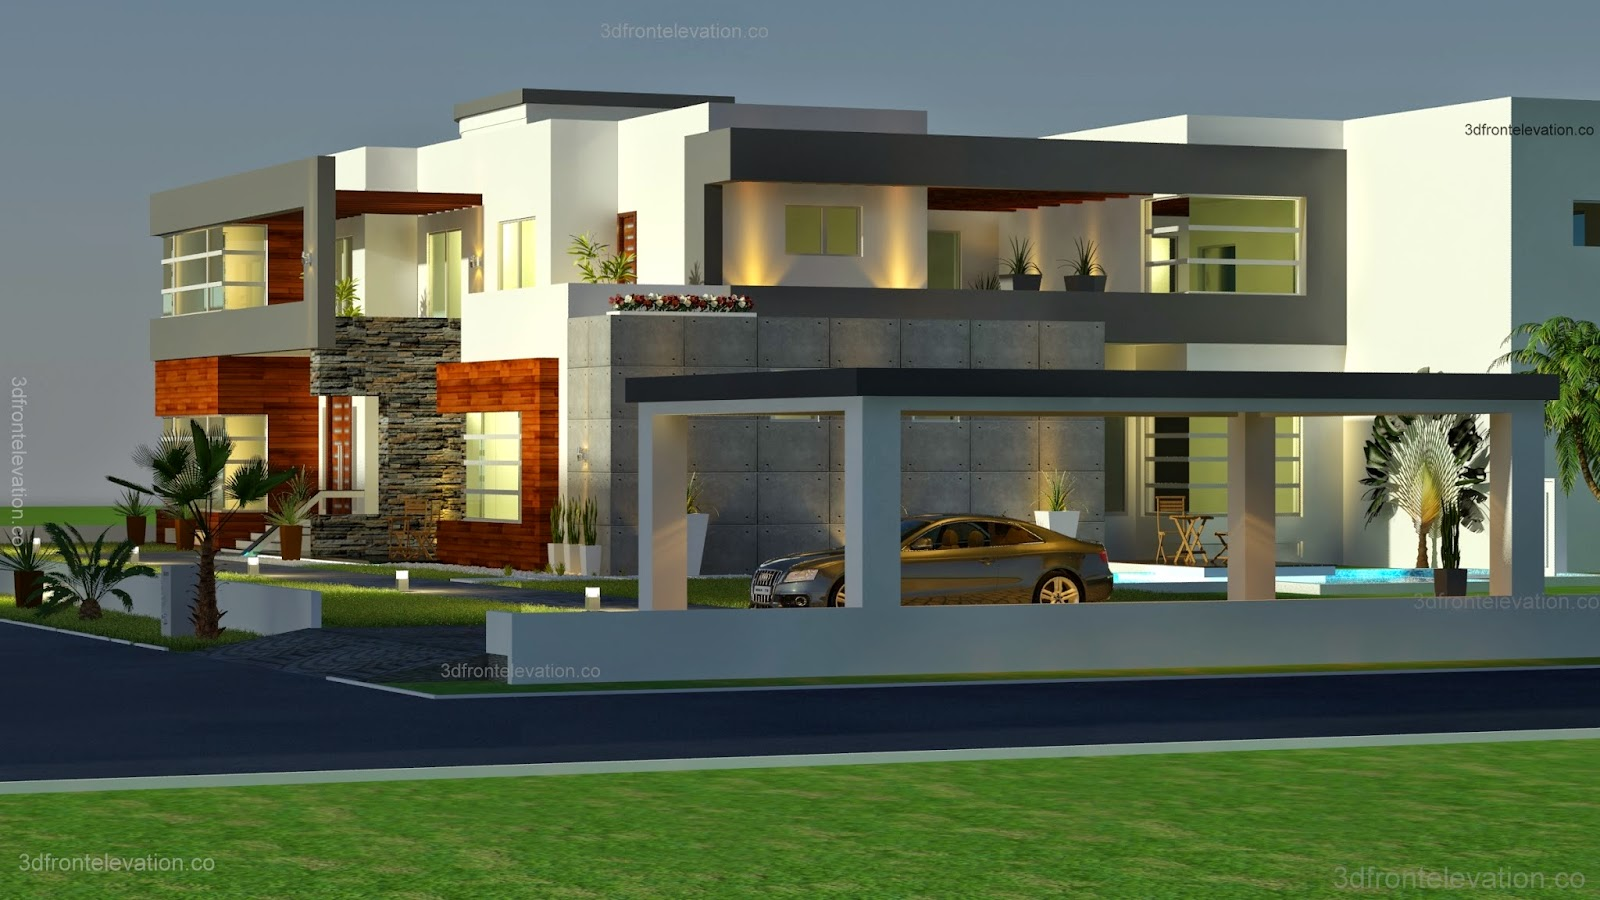 3d front 500 square meter modern Contemporary home design